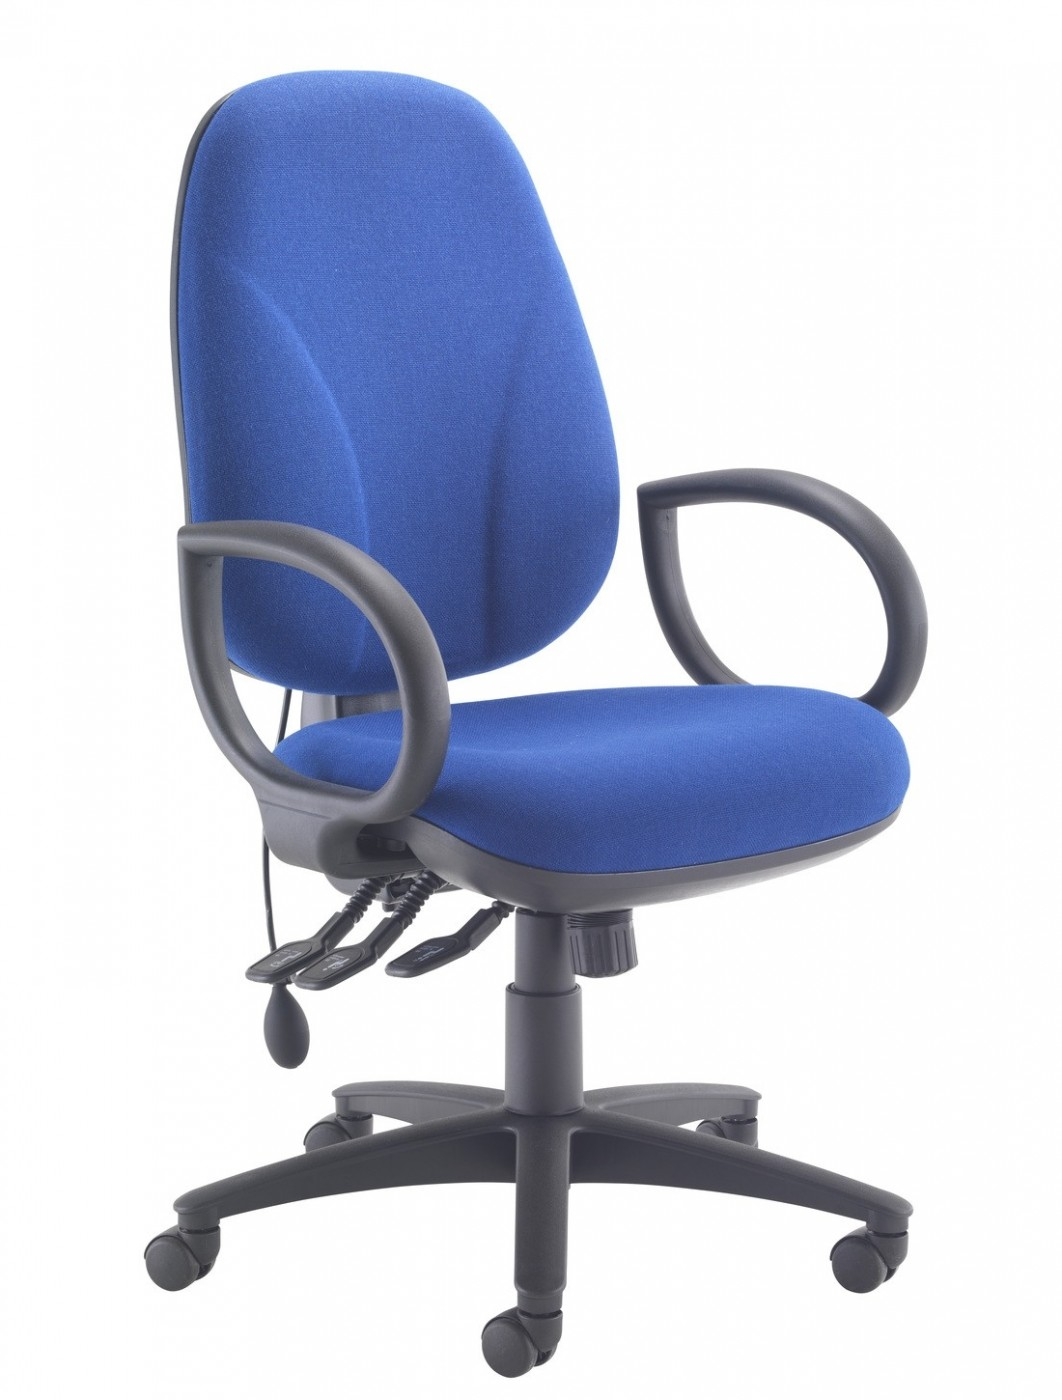 Blue Office Chair Tc Office Concept Maxi Ergo Office Chair Ch0808 In Blue